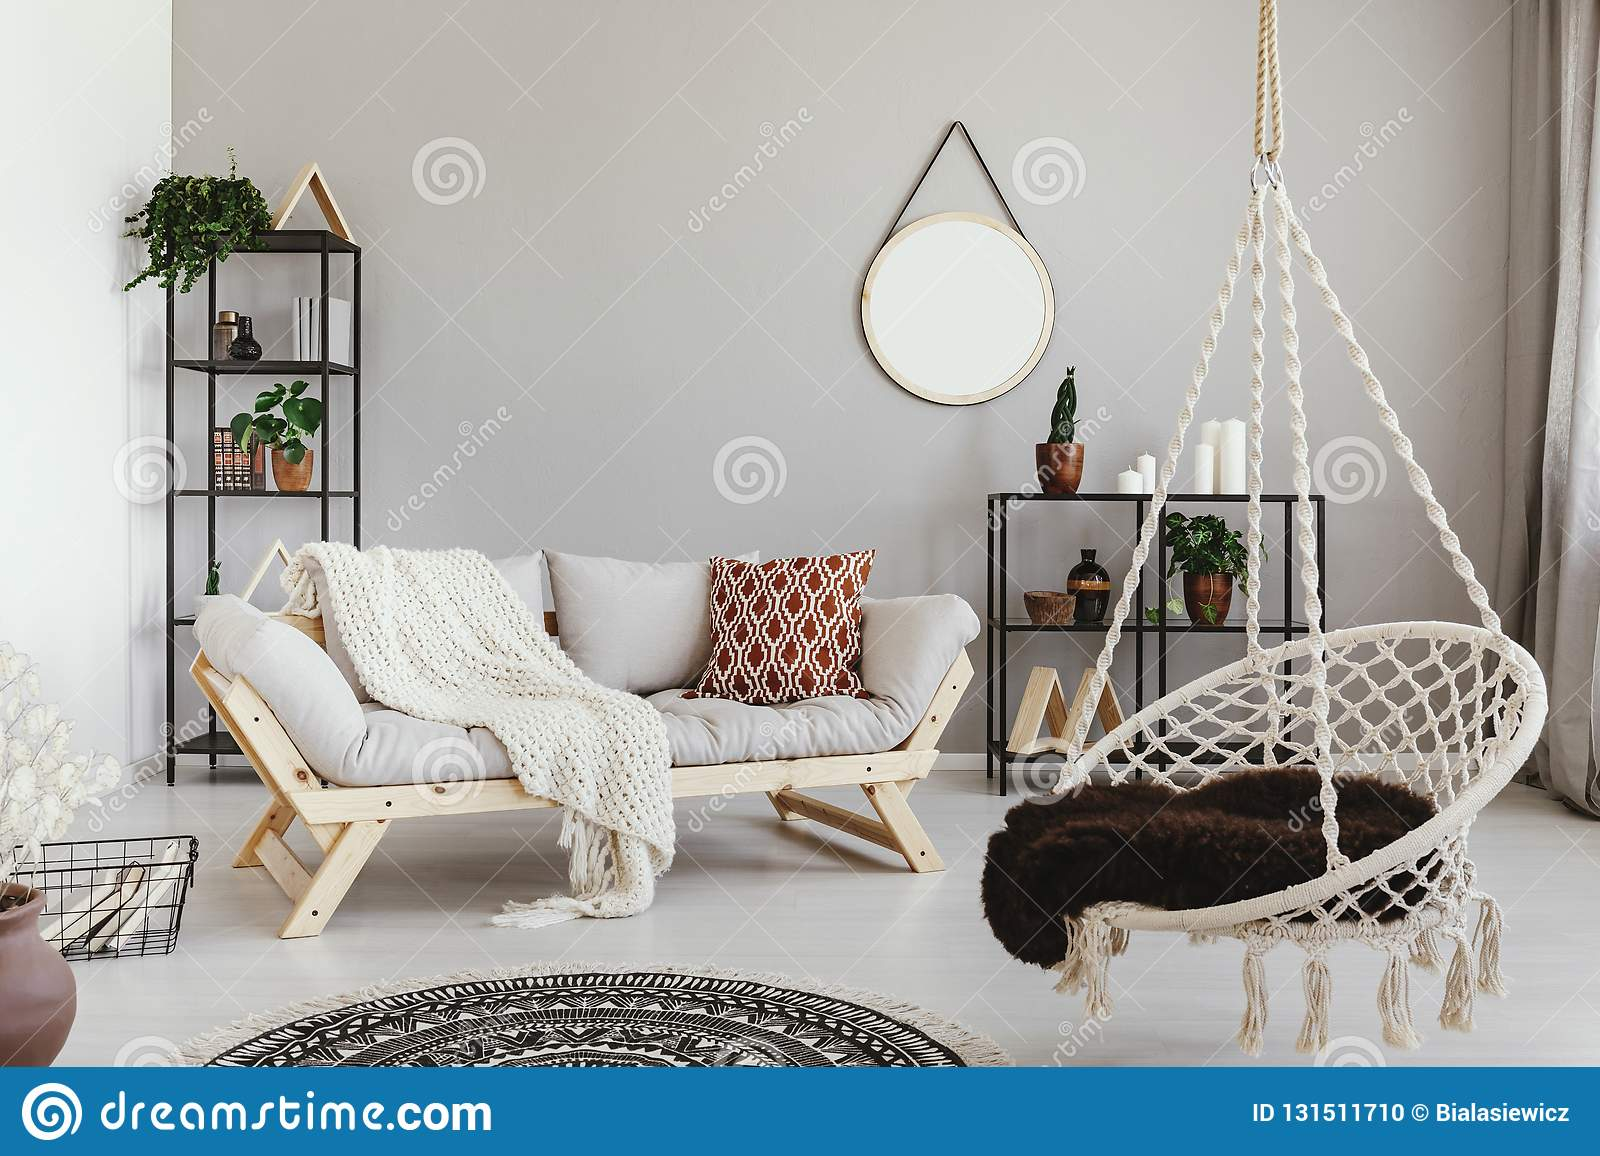 hanging chair in living room folding song and sofa ethno interior with round mirror real photo